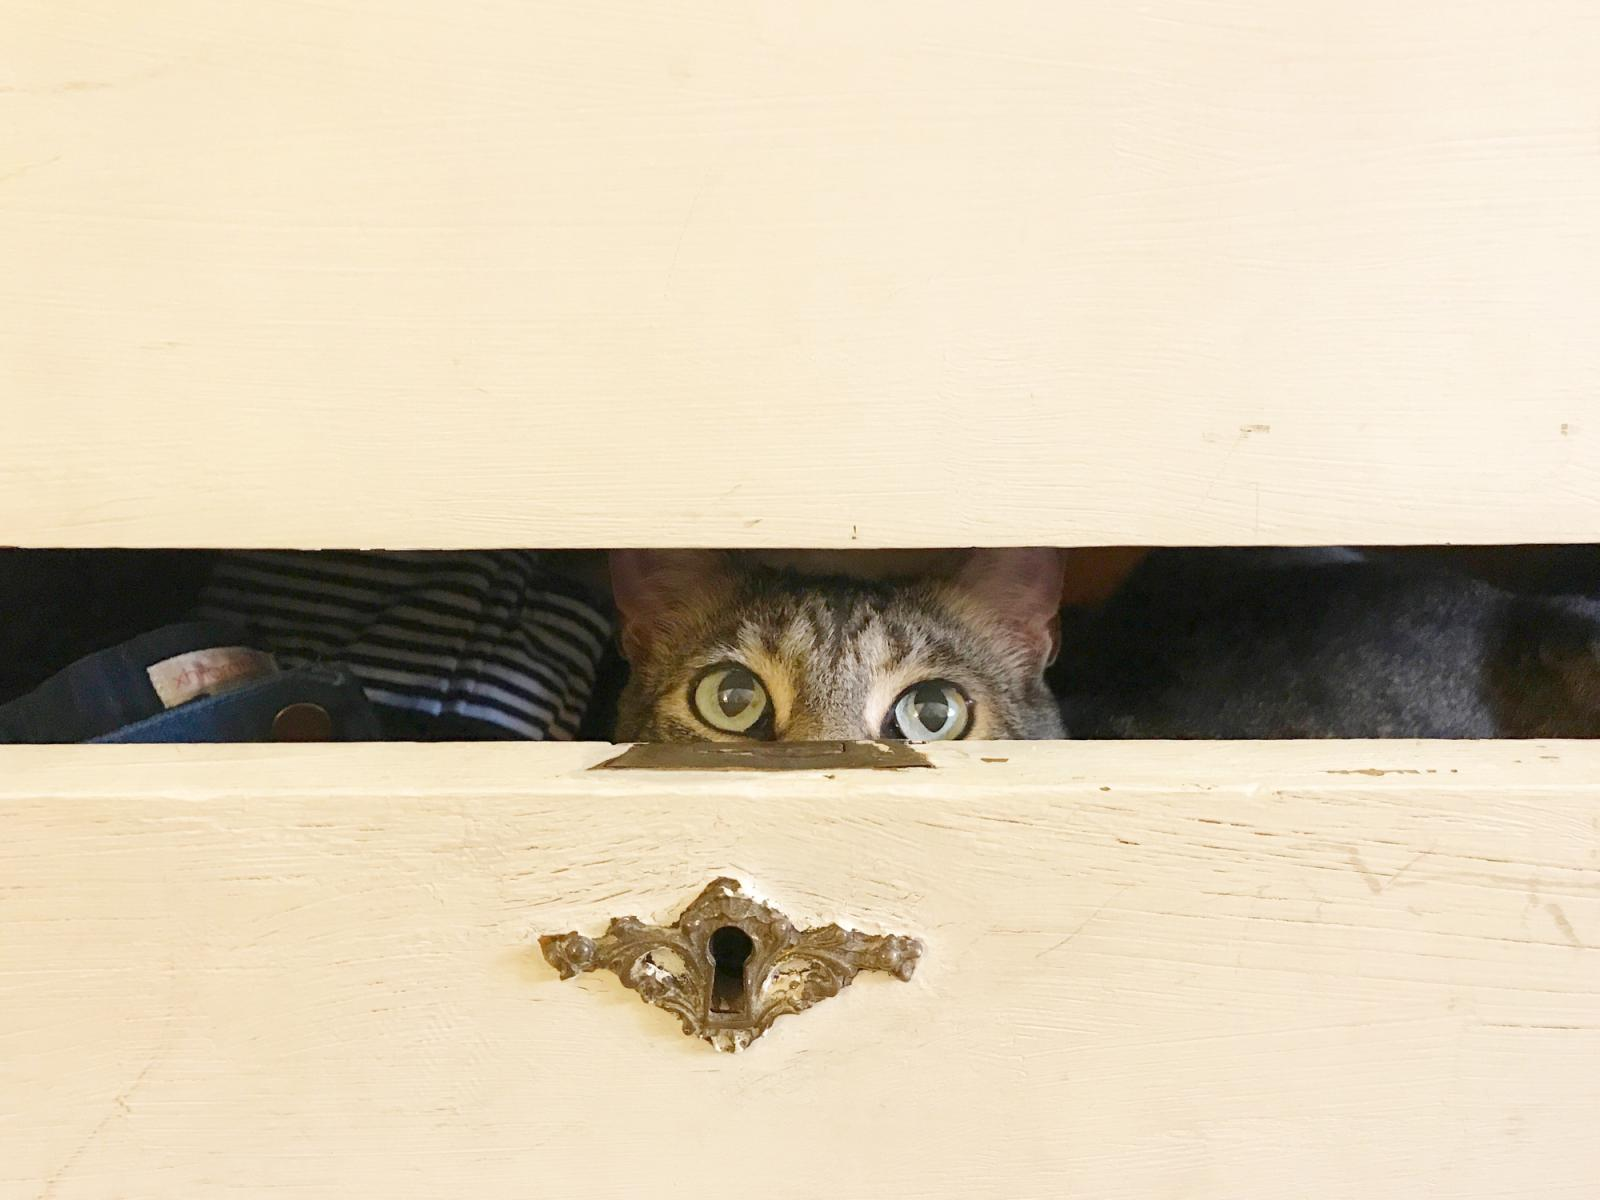 Cat Peeking out of a Dresser Drawer